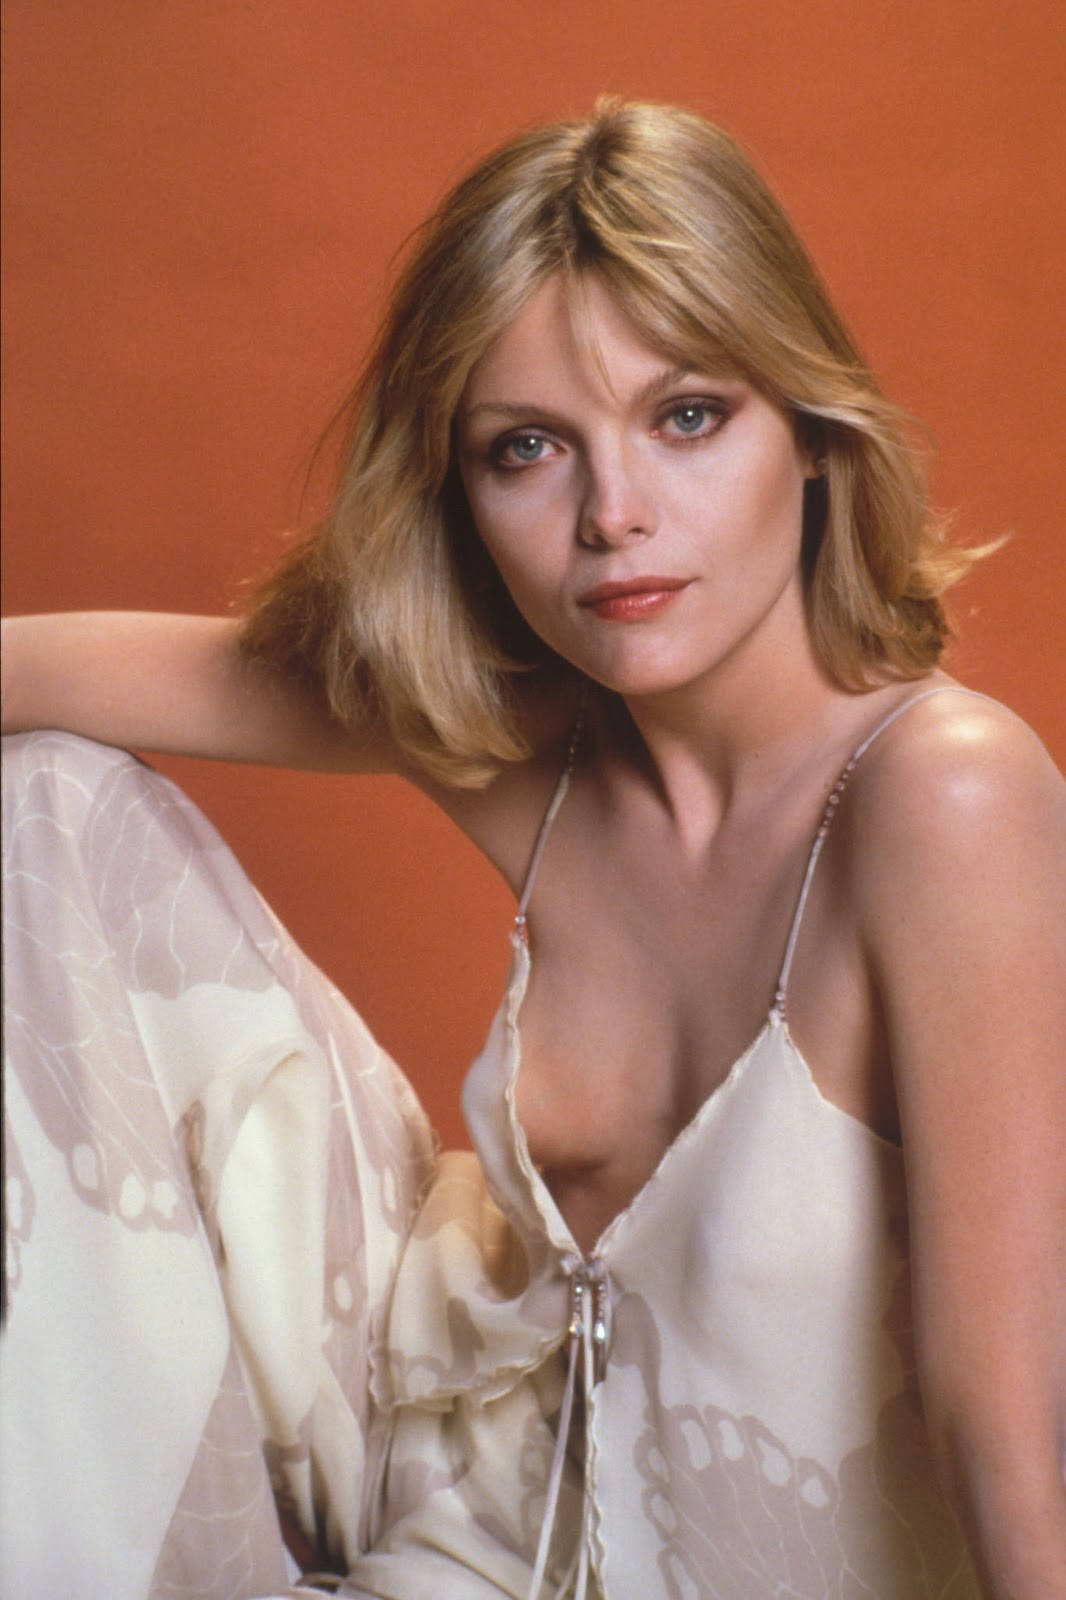 Young Celebrity Photo Gallery Michelle Pfeiffer As Young: Young Celebrity Photo Gallery: Michelle Pfeiffer As Young